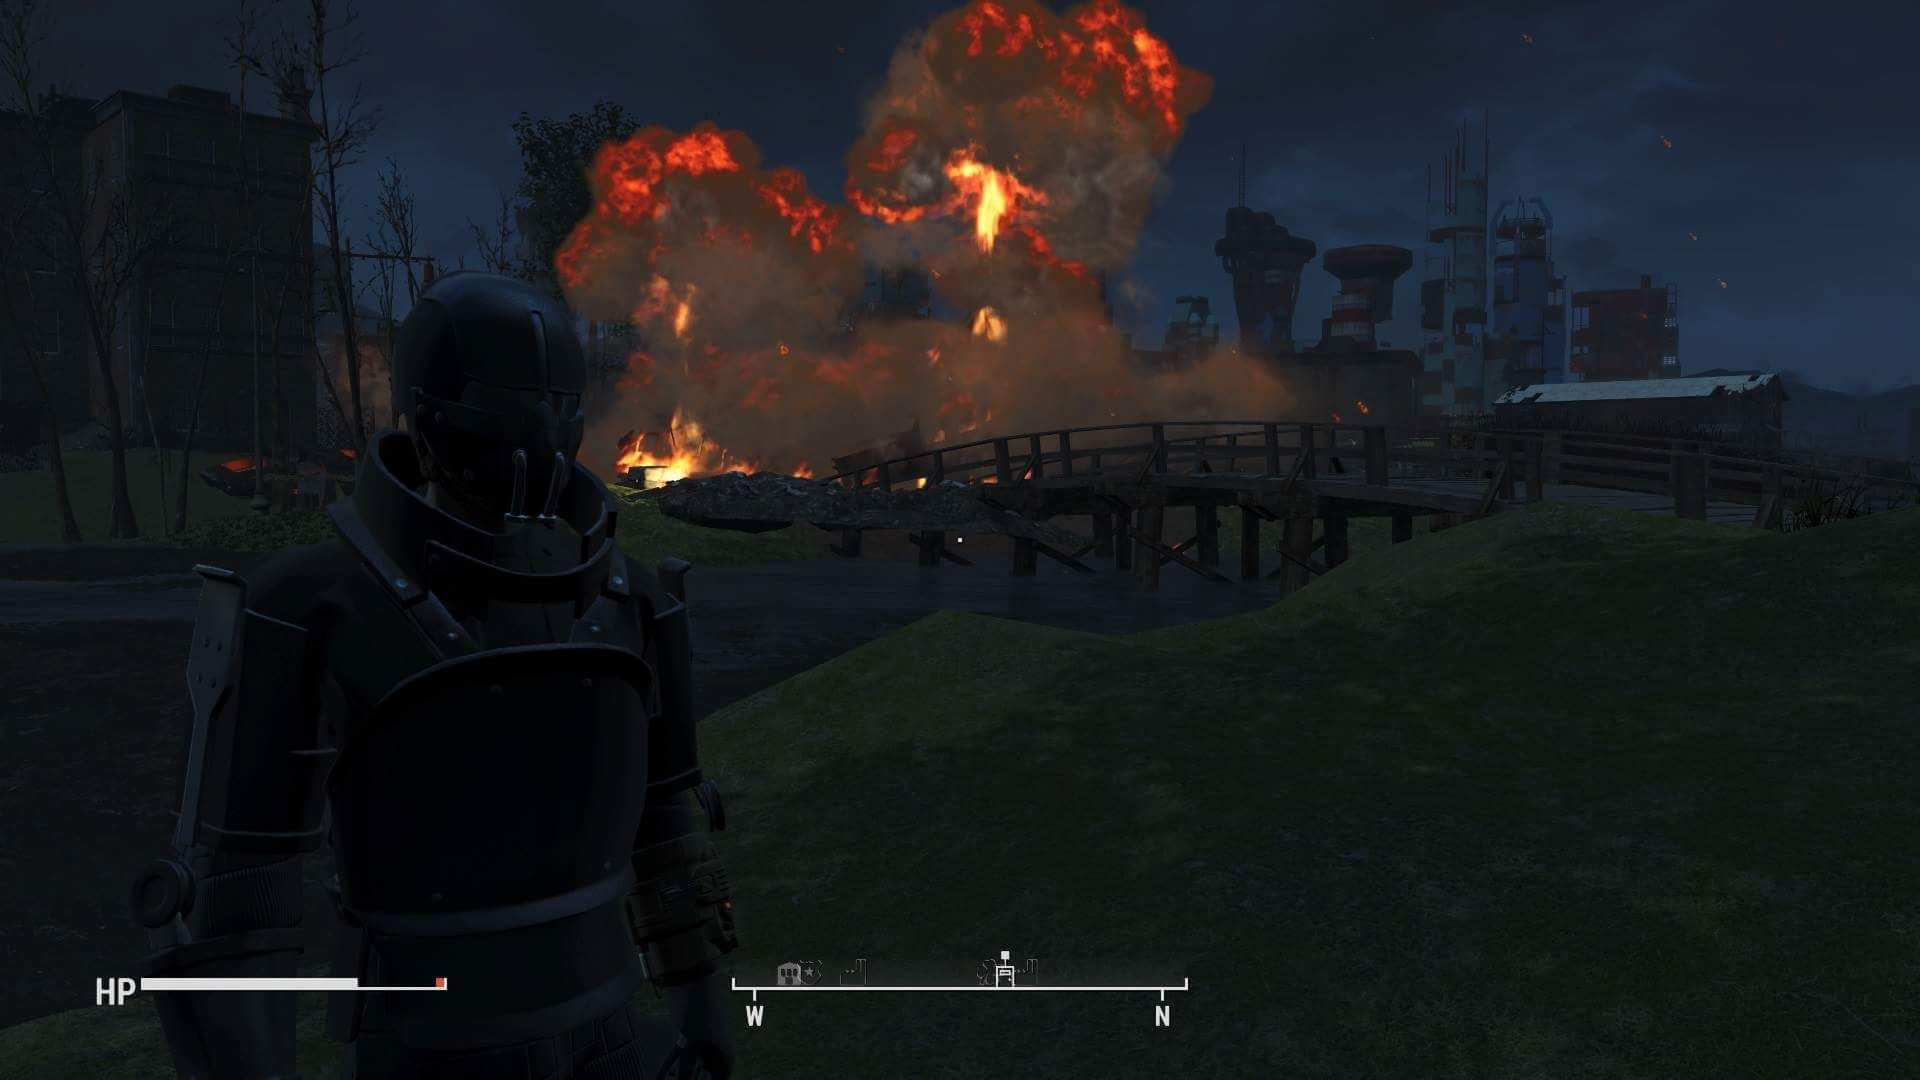 Cool guys never look at explosions. #Fallout4 #gaming #Fallout #Bethesda #games #PS4share #PS4 #FO4